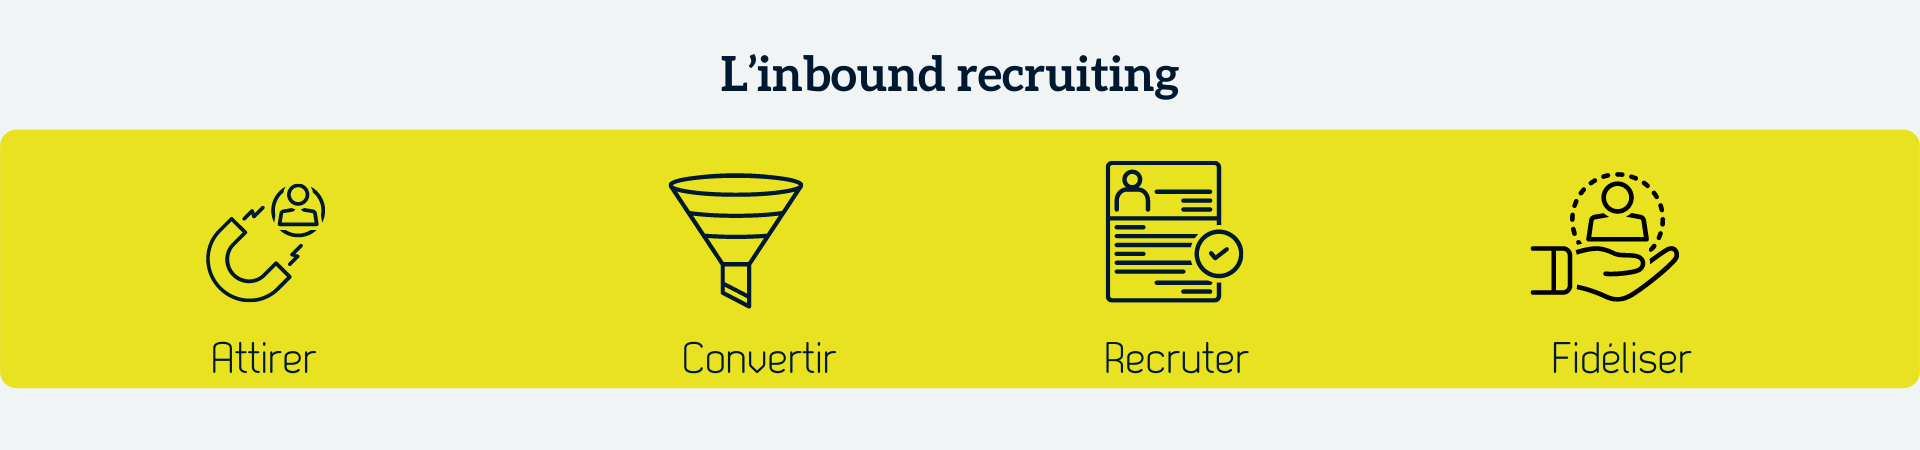 inbound-recruiting-outils-marketing-ressources-humaines-